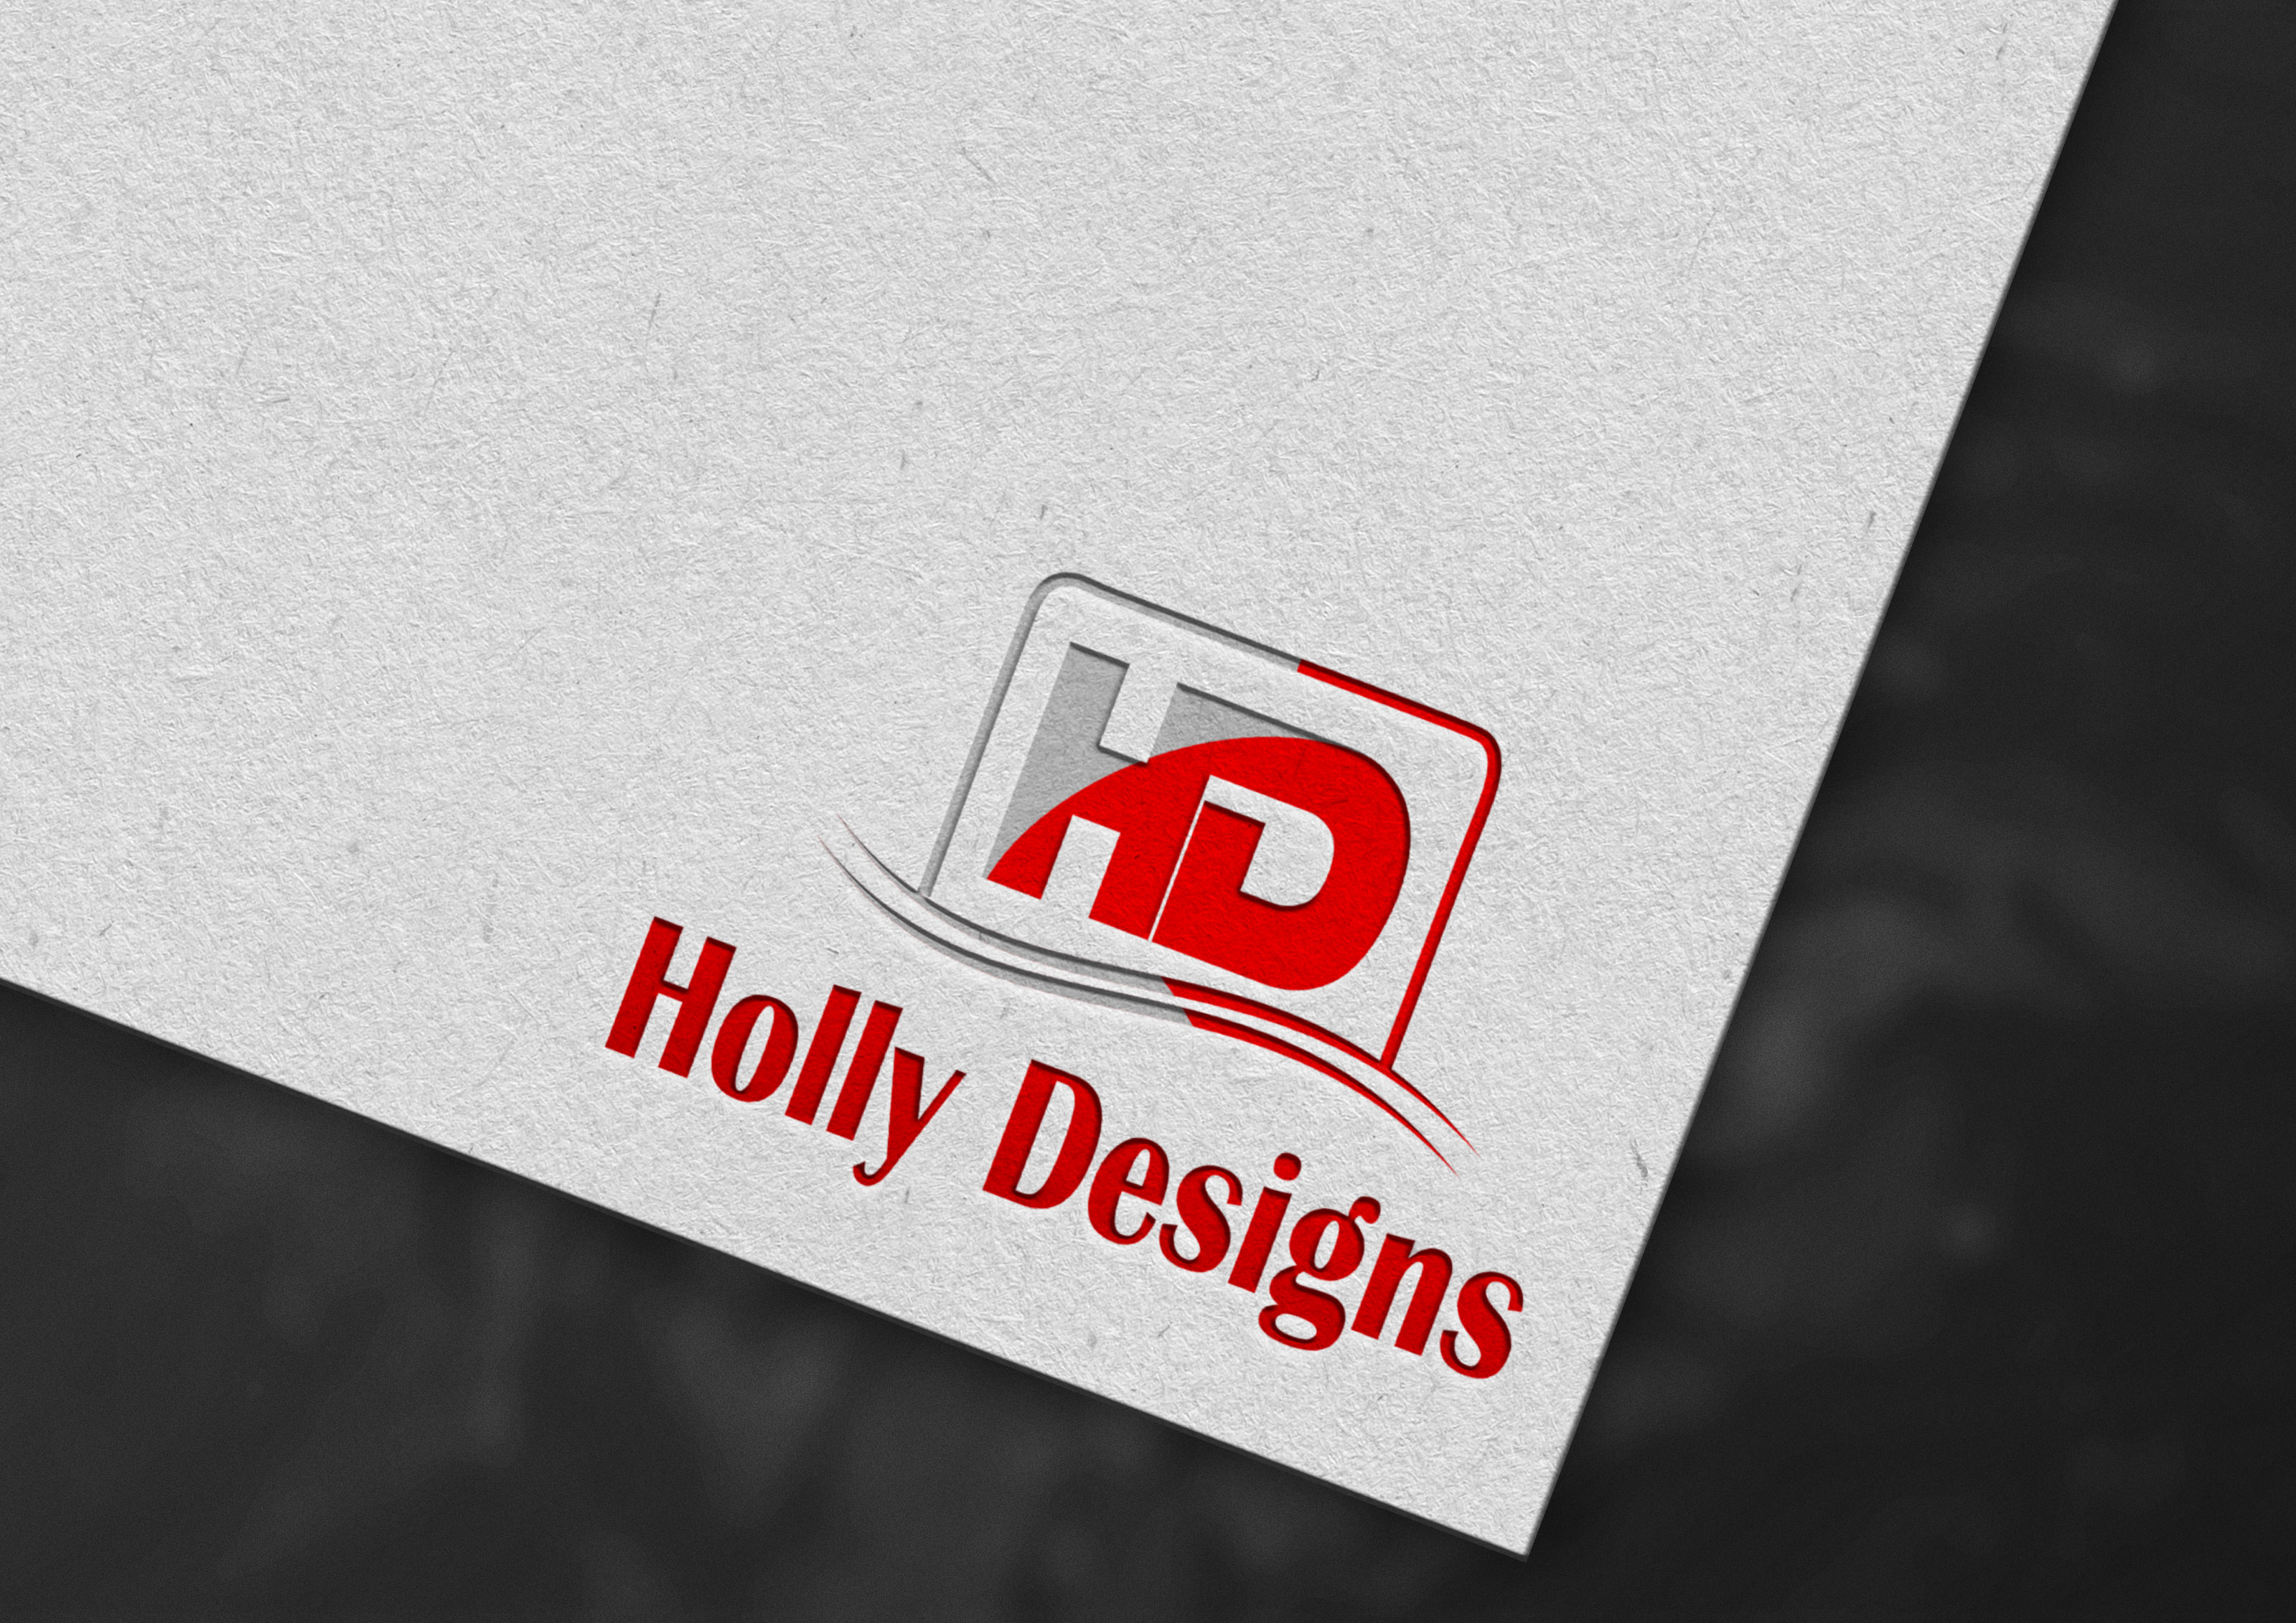 A simple 3D text animation designed for logo design.